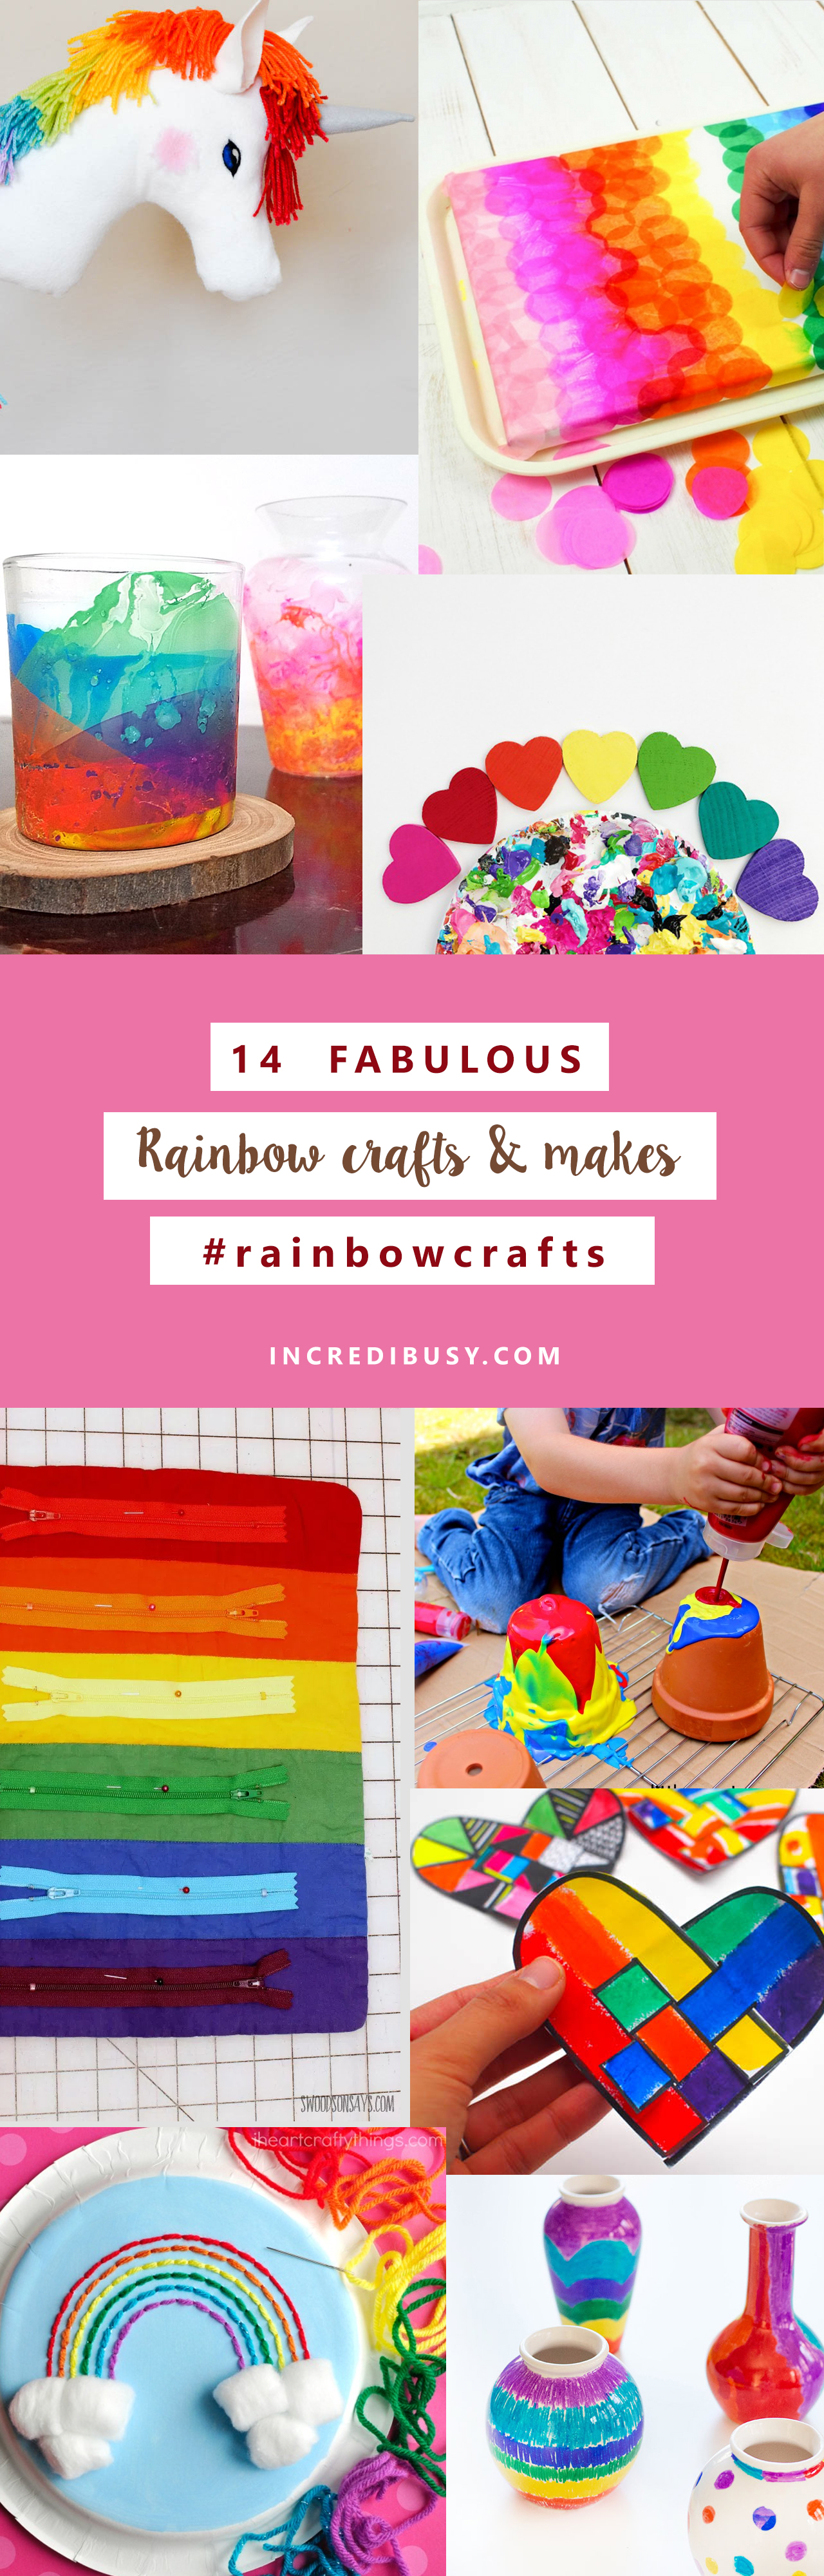 RAINBOW CRAFTS ROUND UP – #UPCYCLED, RE-PURPOSED selection of Rainbow Crafts - almost St Patrick's Day seems as good a reason as any! #eco